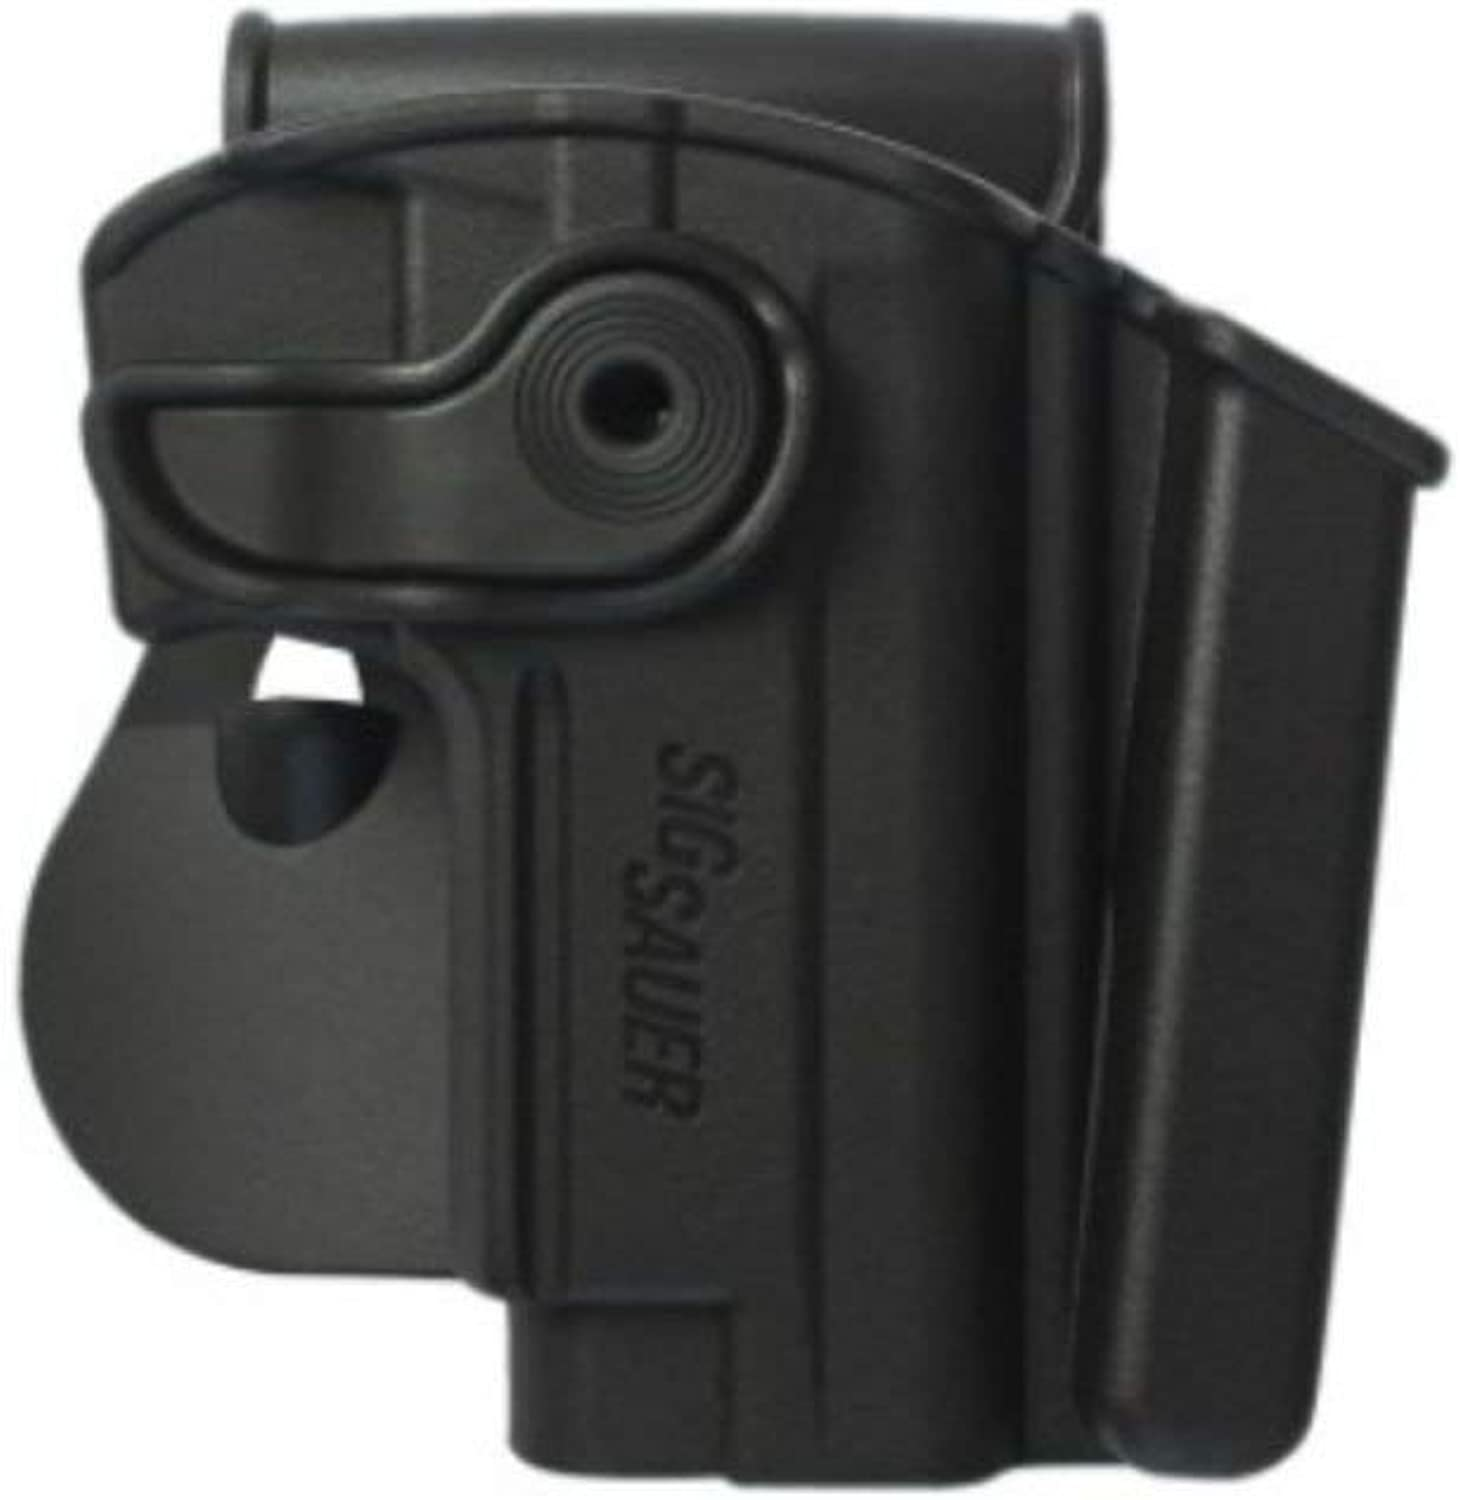 IMI Defense Tactical Polymer redo Holster Integrated Mag Pouch For Sig Sauer Mosquito